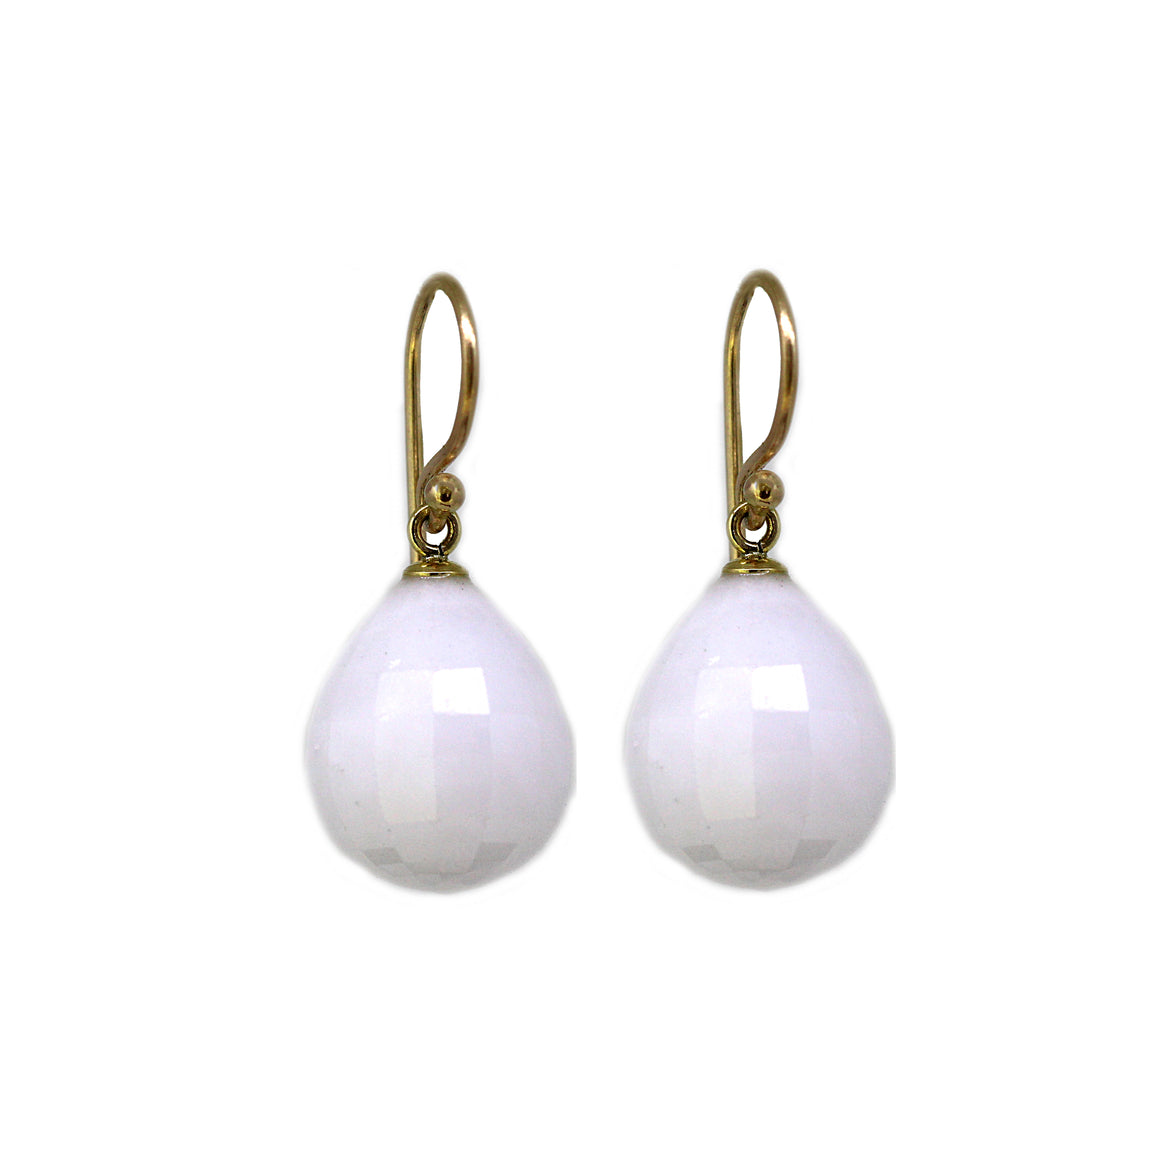 White Agate Gemstone Earrings